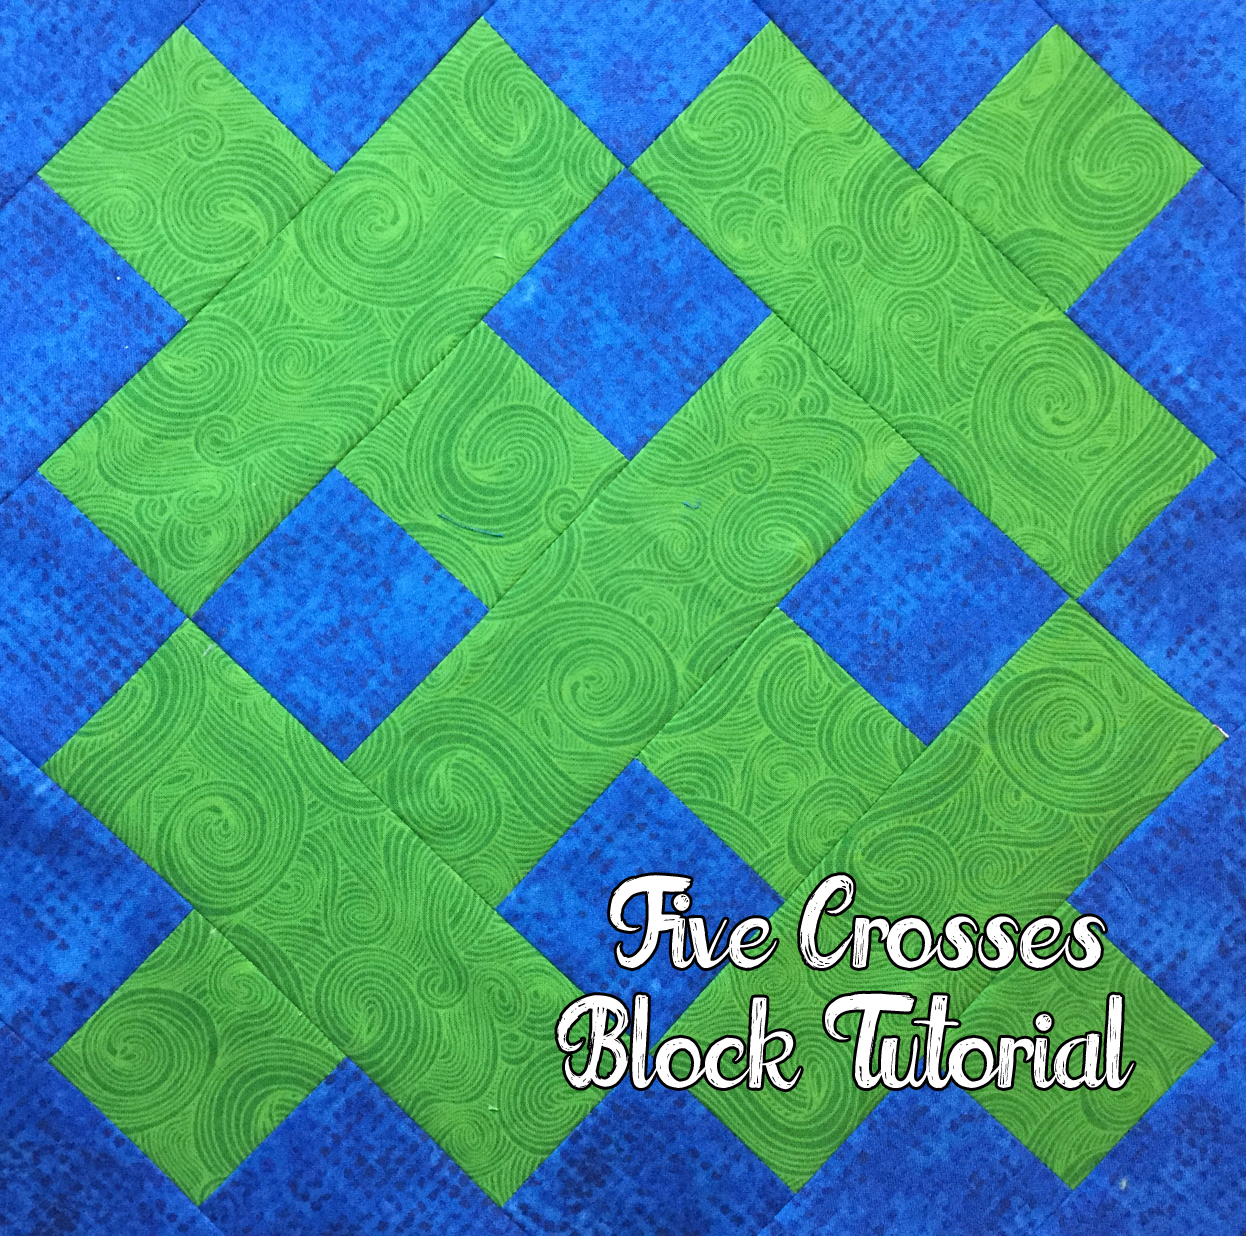 http://hotpinkquilts.blogspot.com/2016/01/five-crosses-block-tutorial.html